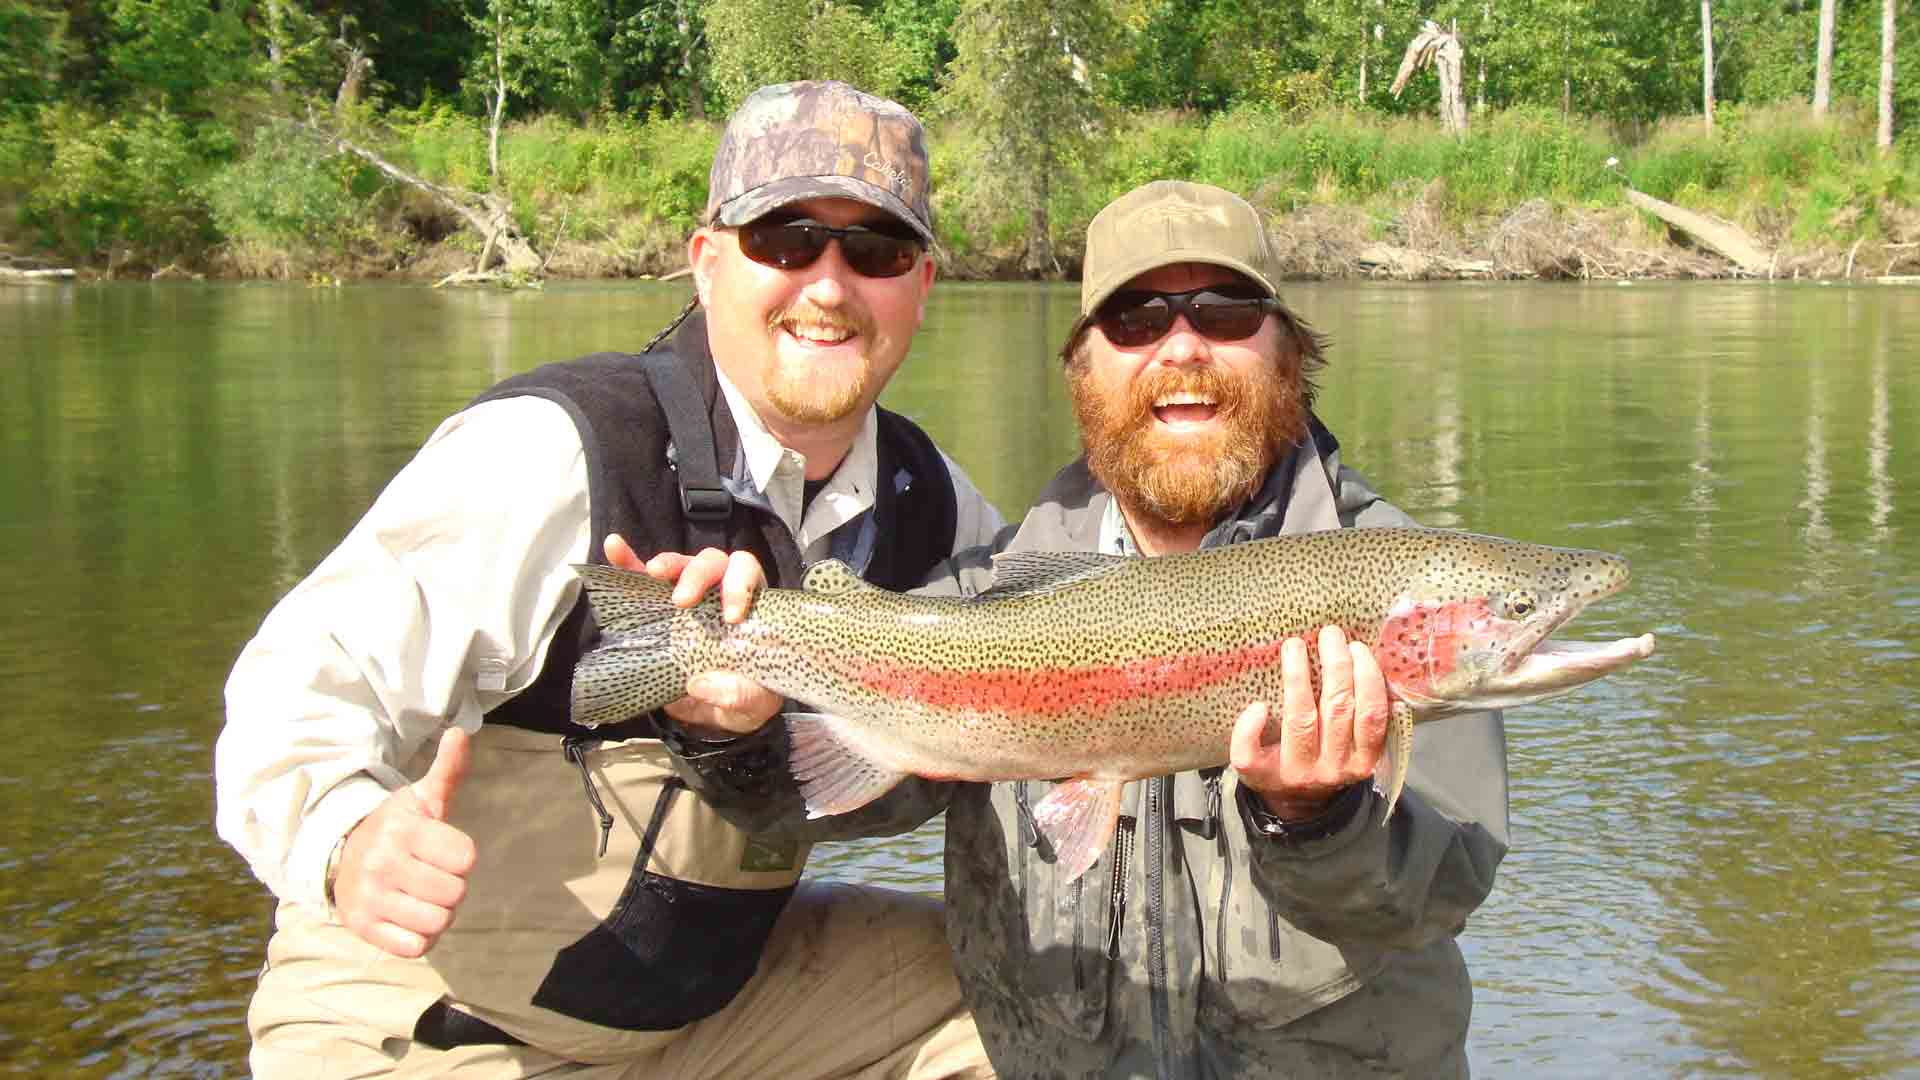 Aniak River Rainbows